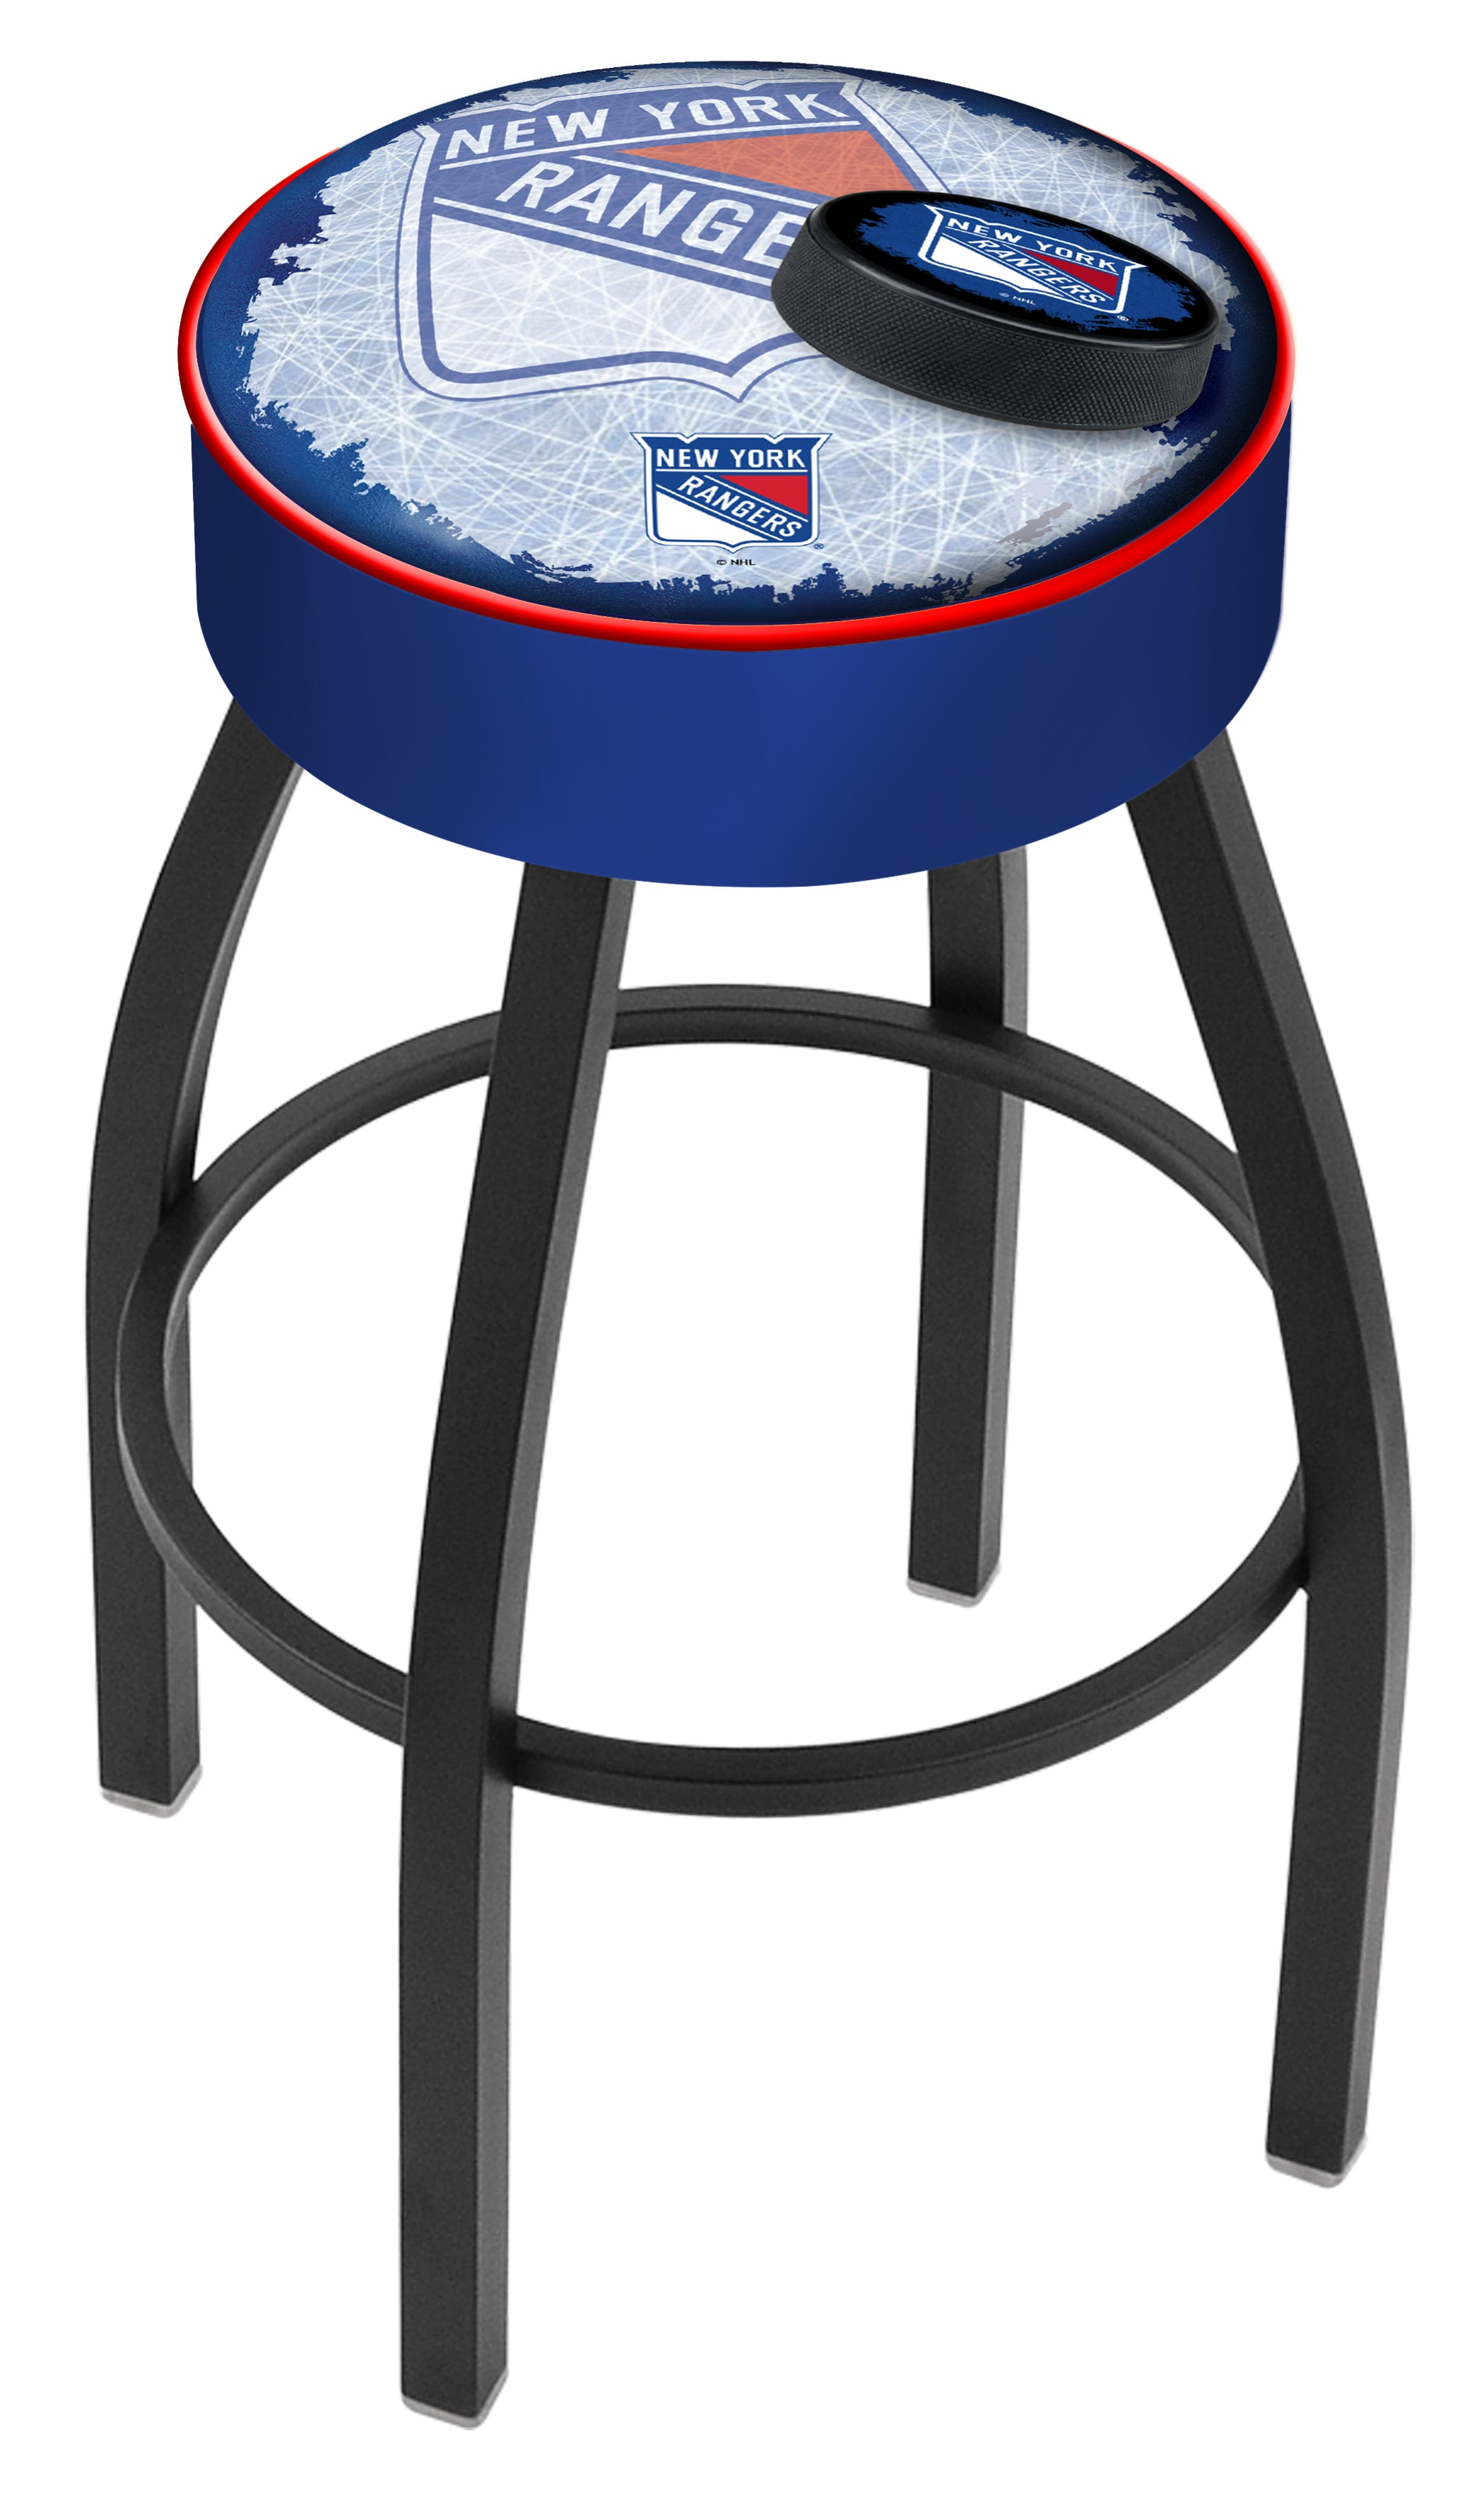 nyc bar stool 28 images new york barstool chrome new  : L8B1NYRang D2 from www.inhomecarestlouis.com size 2100 x 3556 jpeg 346kB